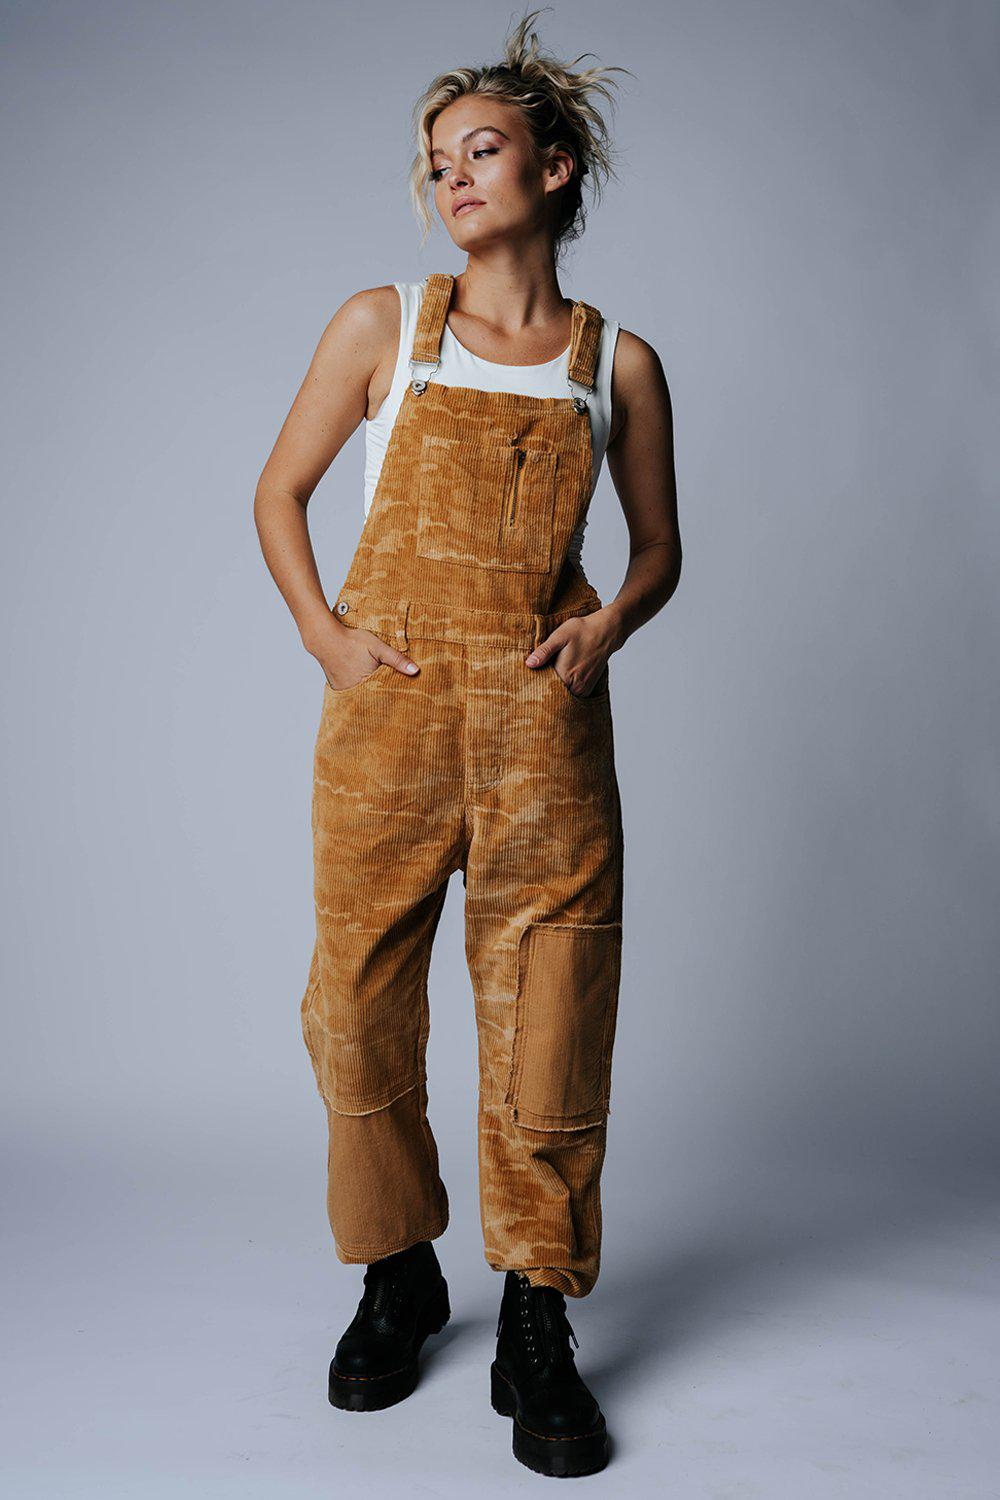 best_seller, Can't See Me Overalls in Caramel Combo, Bottom, women's clothing, dresses, skirts, coats, jackets, shoes, boots, tops, tee shirts, jeans, free people, levi's, rollas, jumpsuits, bottoms, tops, sweaters, pullovers, pants, shorts, sweats,.